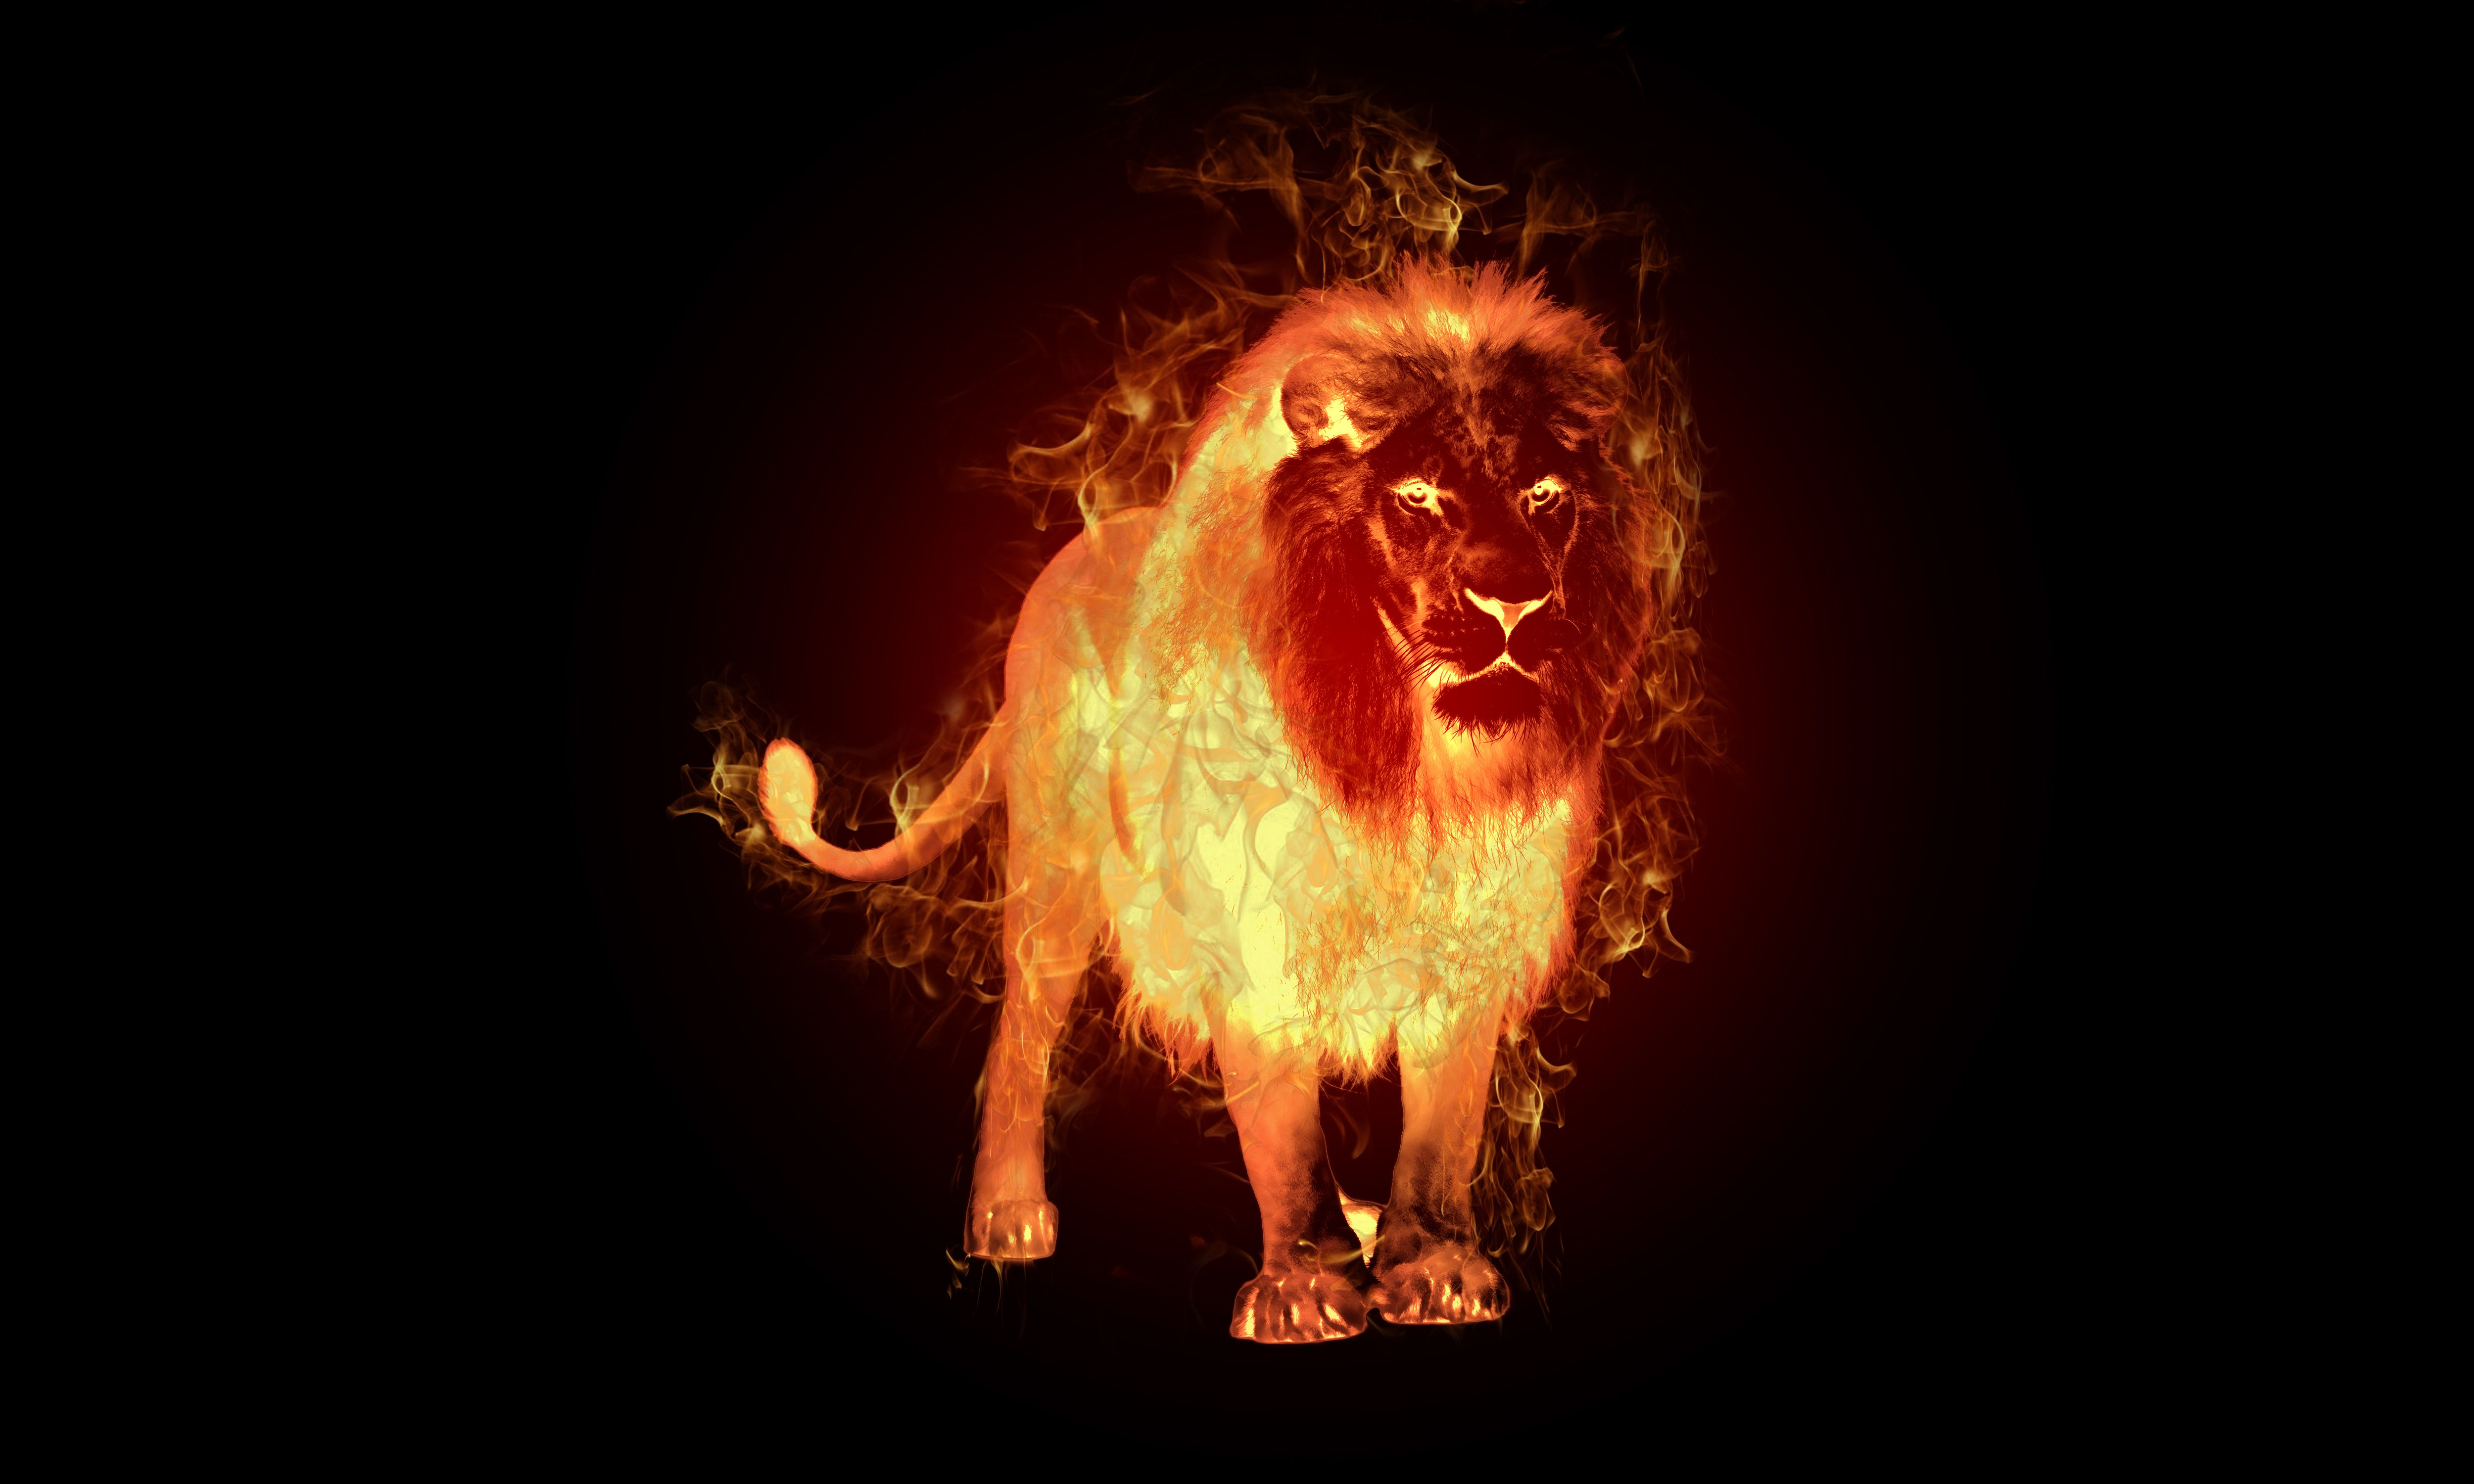 Fire Lion Wallpapers Top Free Fire Lion Backgrounds - Fire Lion , HD Wallpaper & Backgrounds